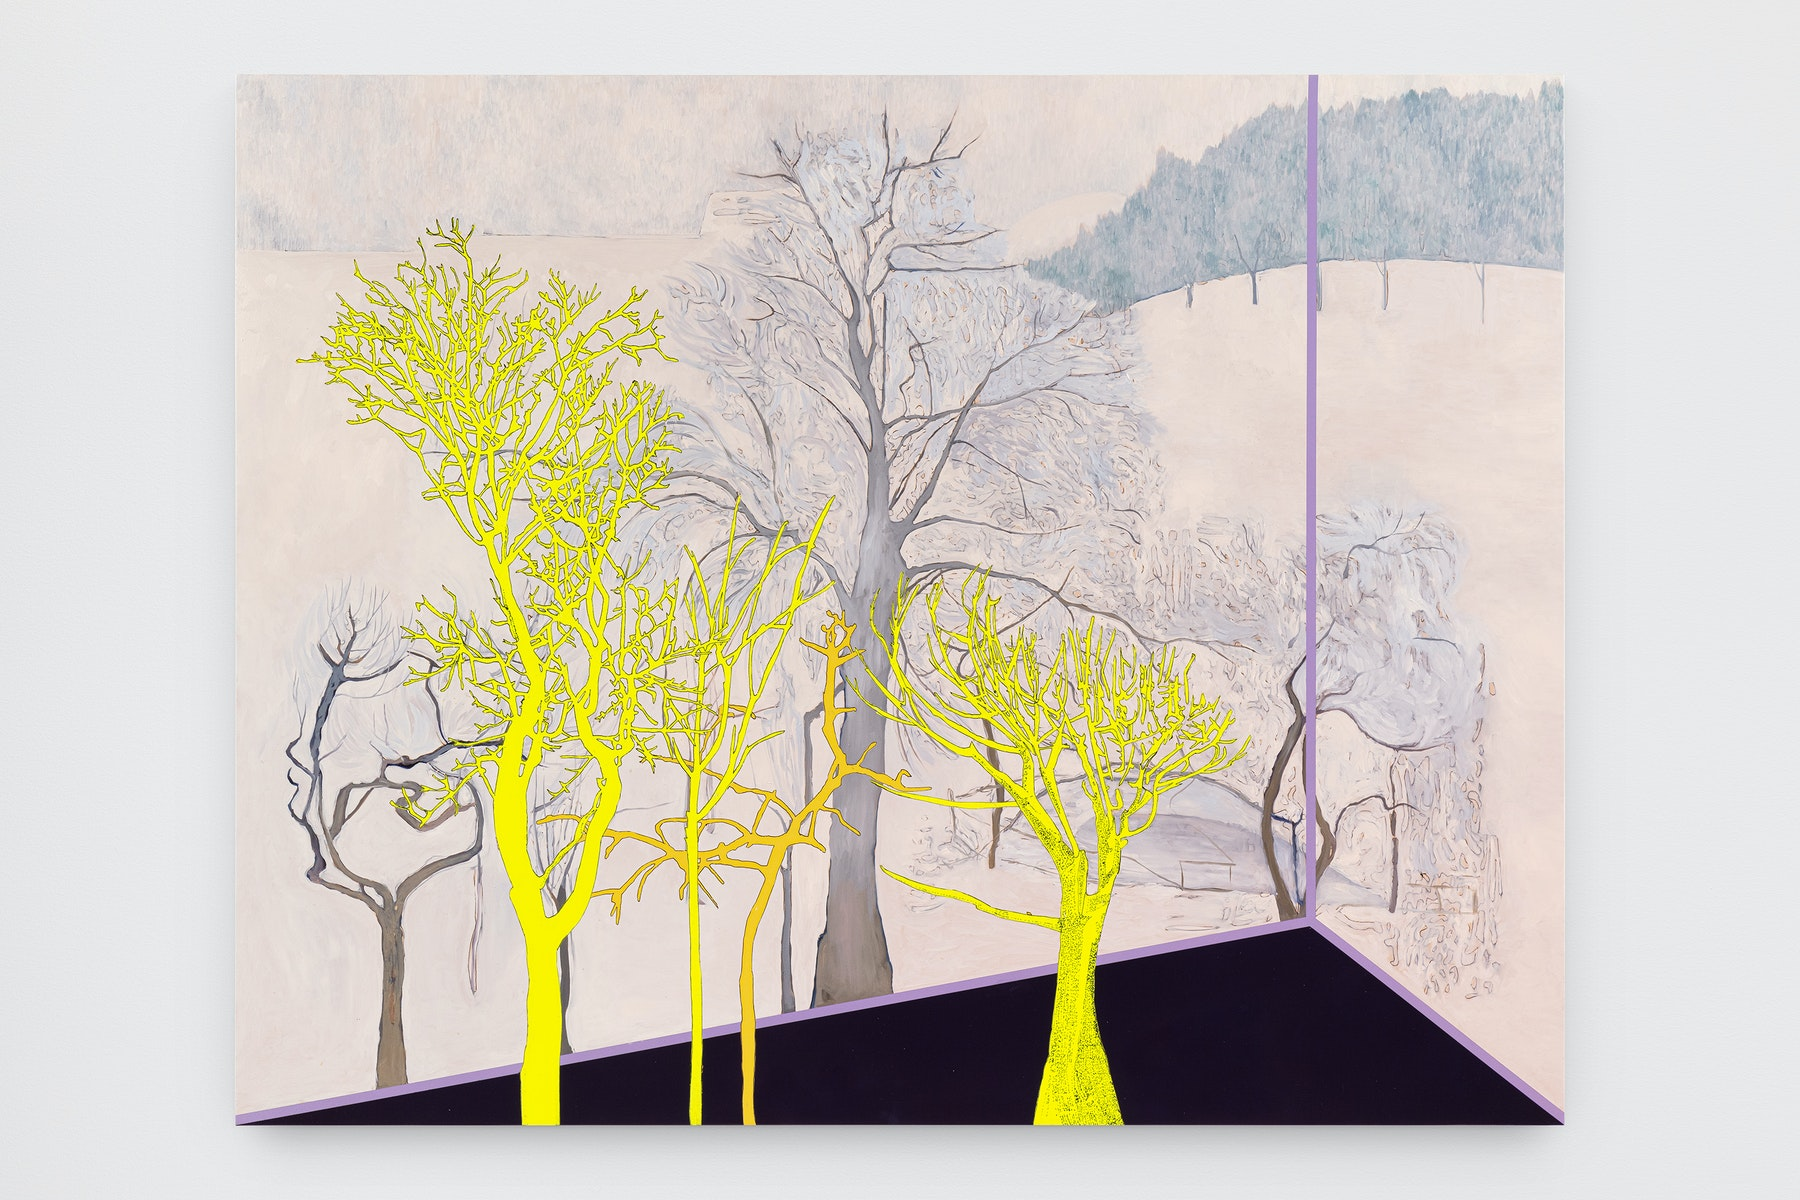 """Whitney Bedford """"Veduta (Amiet Winter),"""" 2021 Ink and oil on linen on hybrid panel 51"""" x 64 ¹⁄₂"""" [HxW] (129.54 x 163.83 cm) Inventory #BED412 Courtesy of the artist and Vielmetter Los Angeles Photo credit: Evan Bedford"""